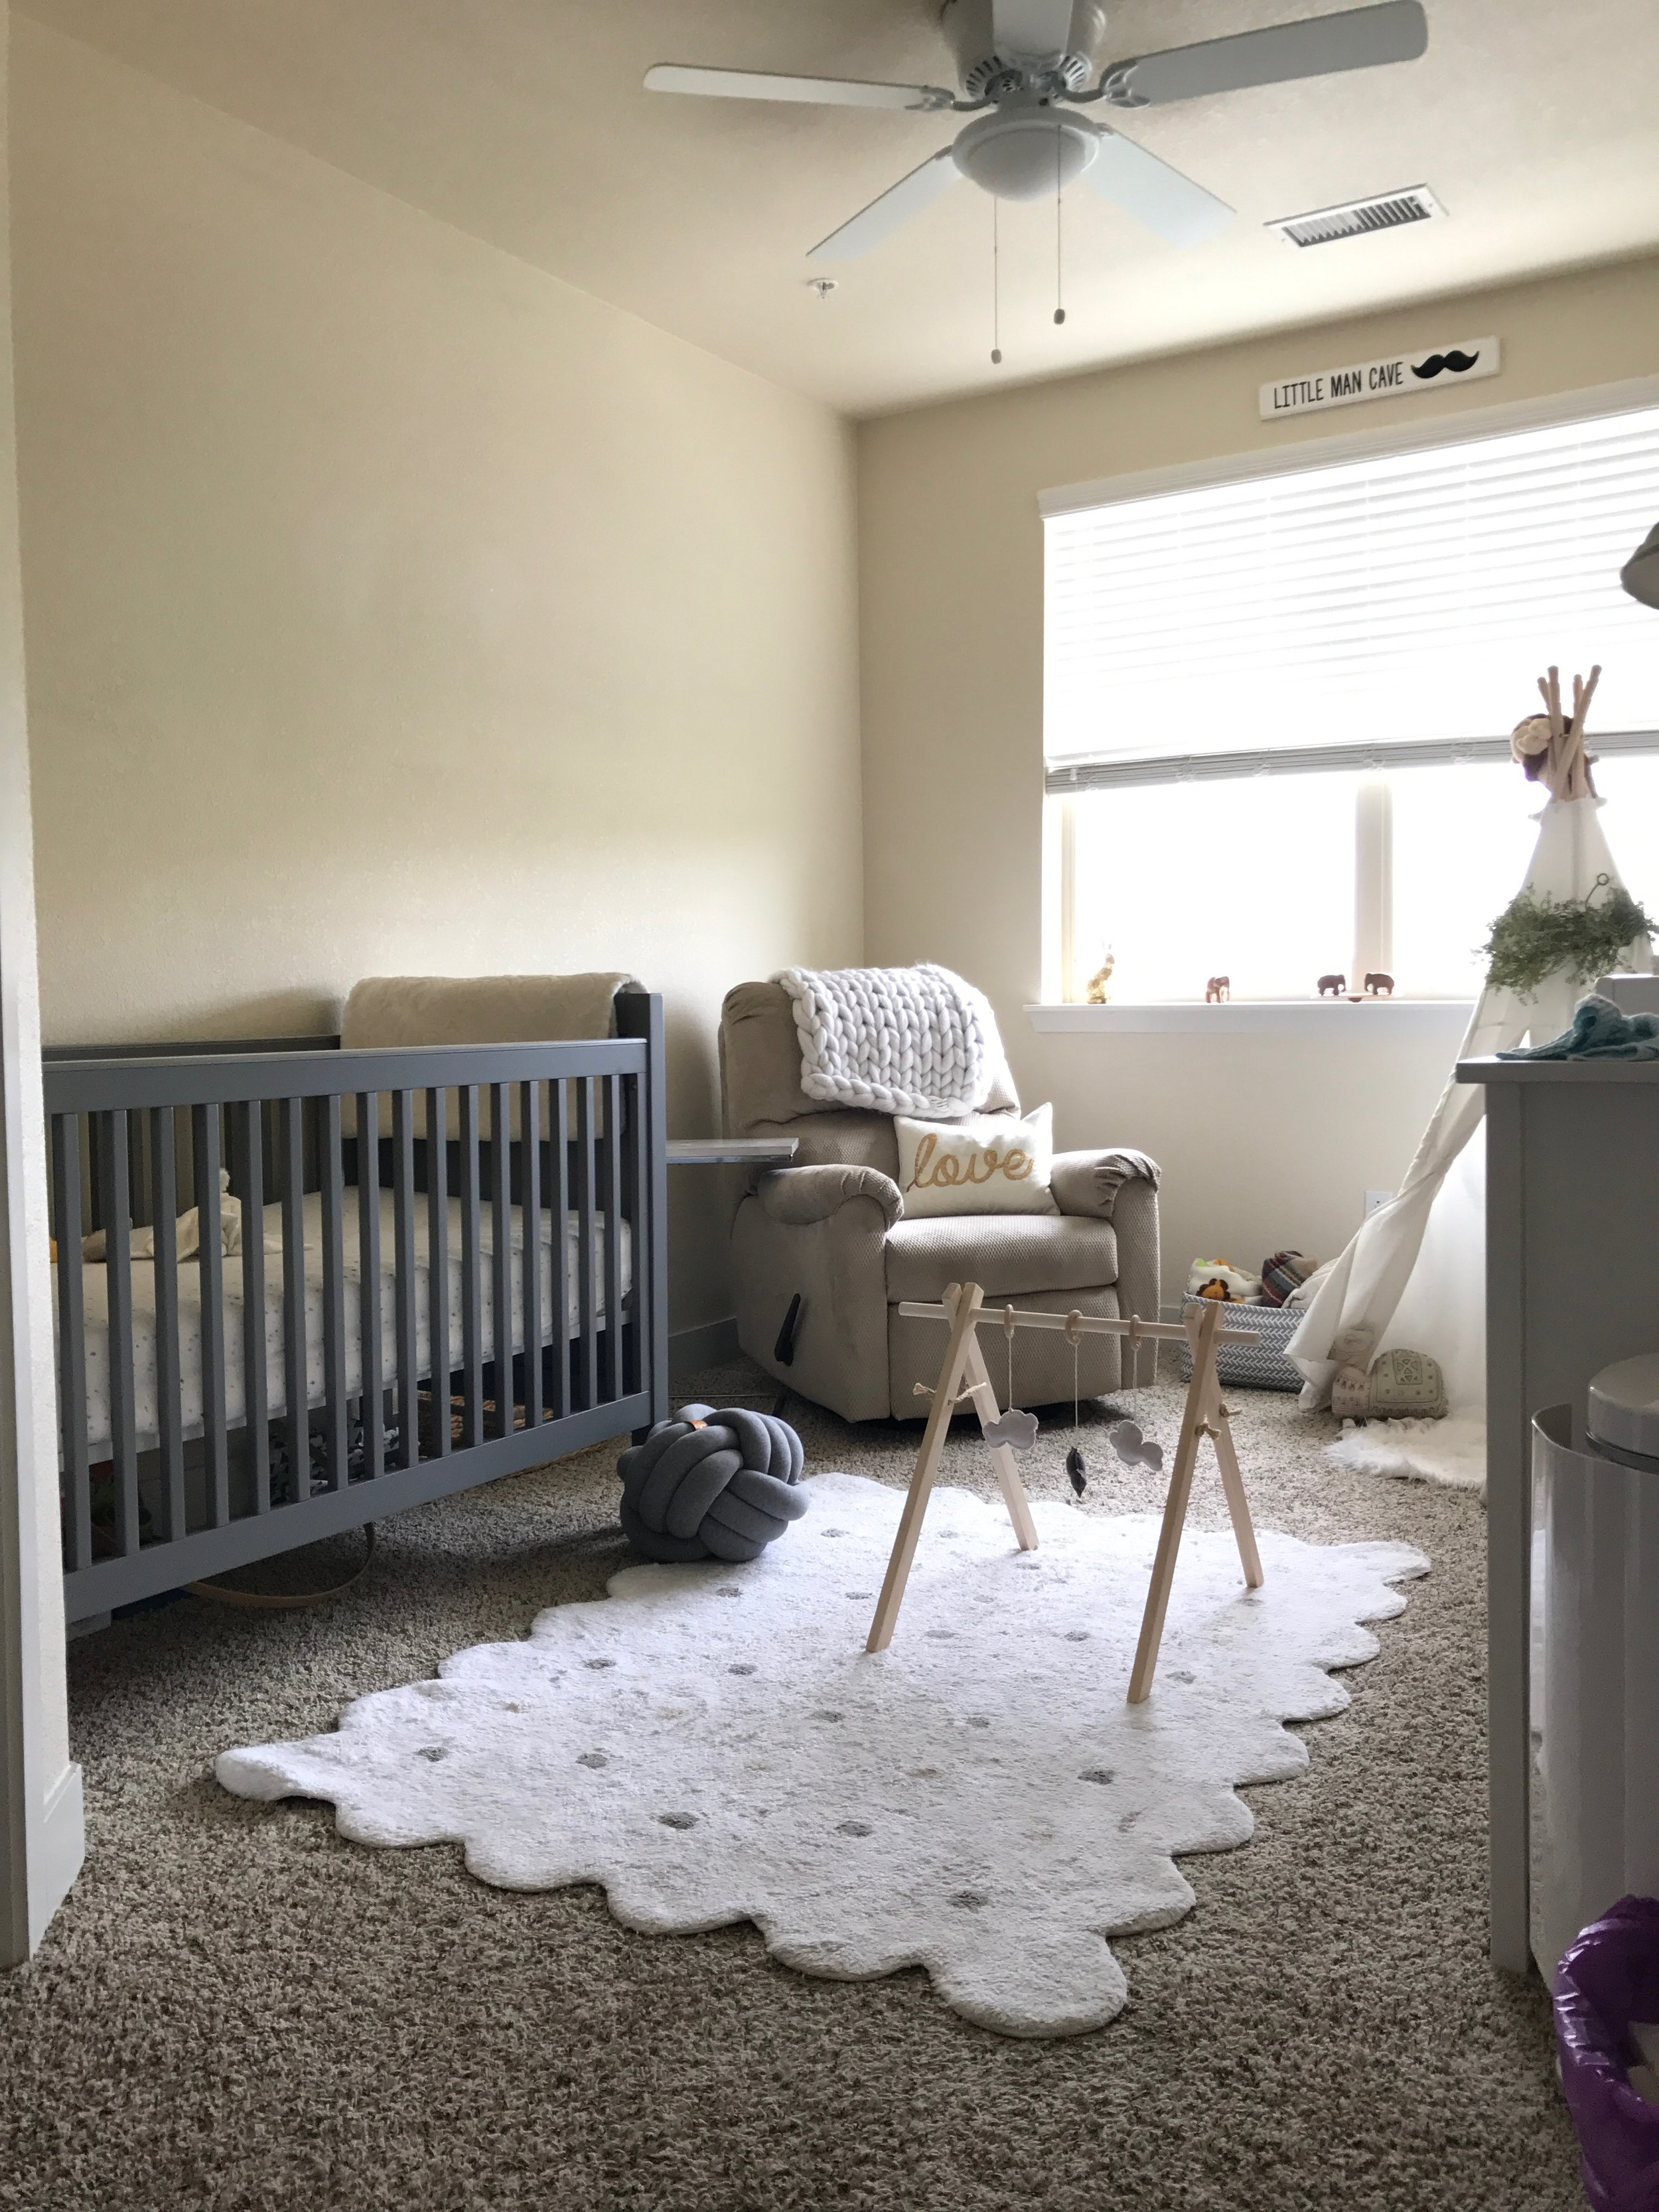 Rug by  Lorena Canal s II Wooden Play Gym by  Alluring Co.  II Knot Pillow by  Juju & Jake